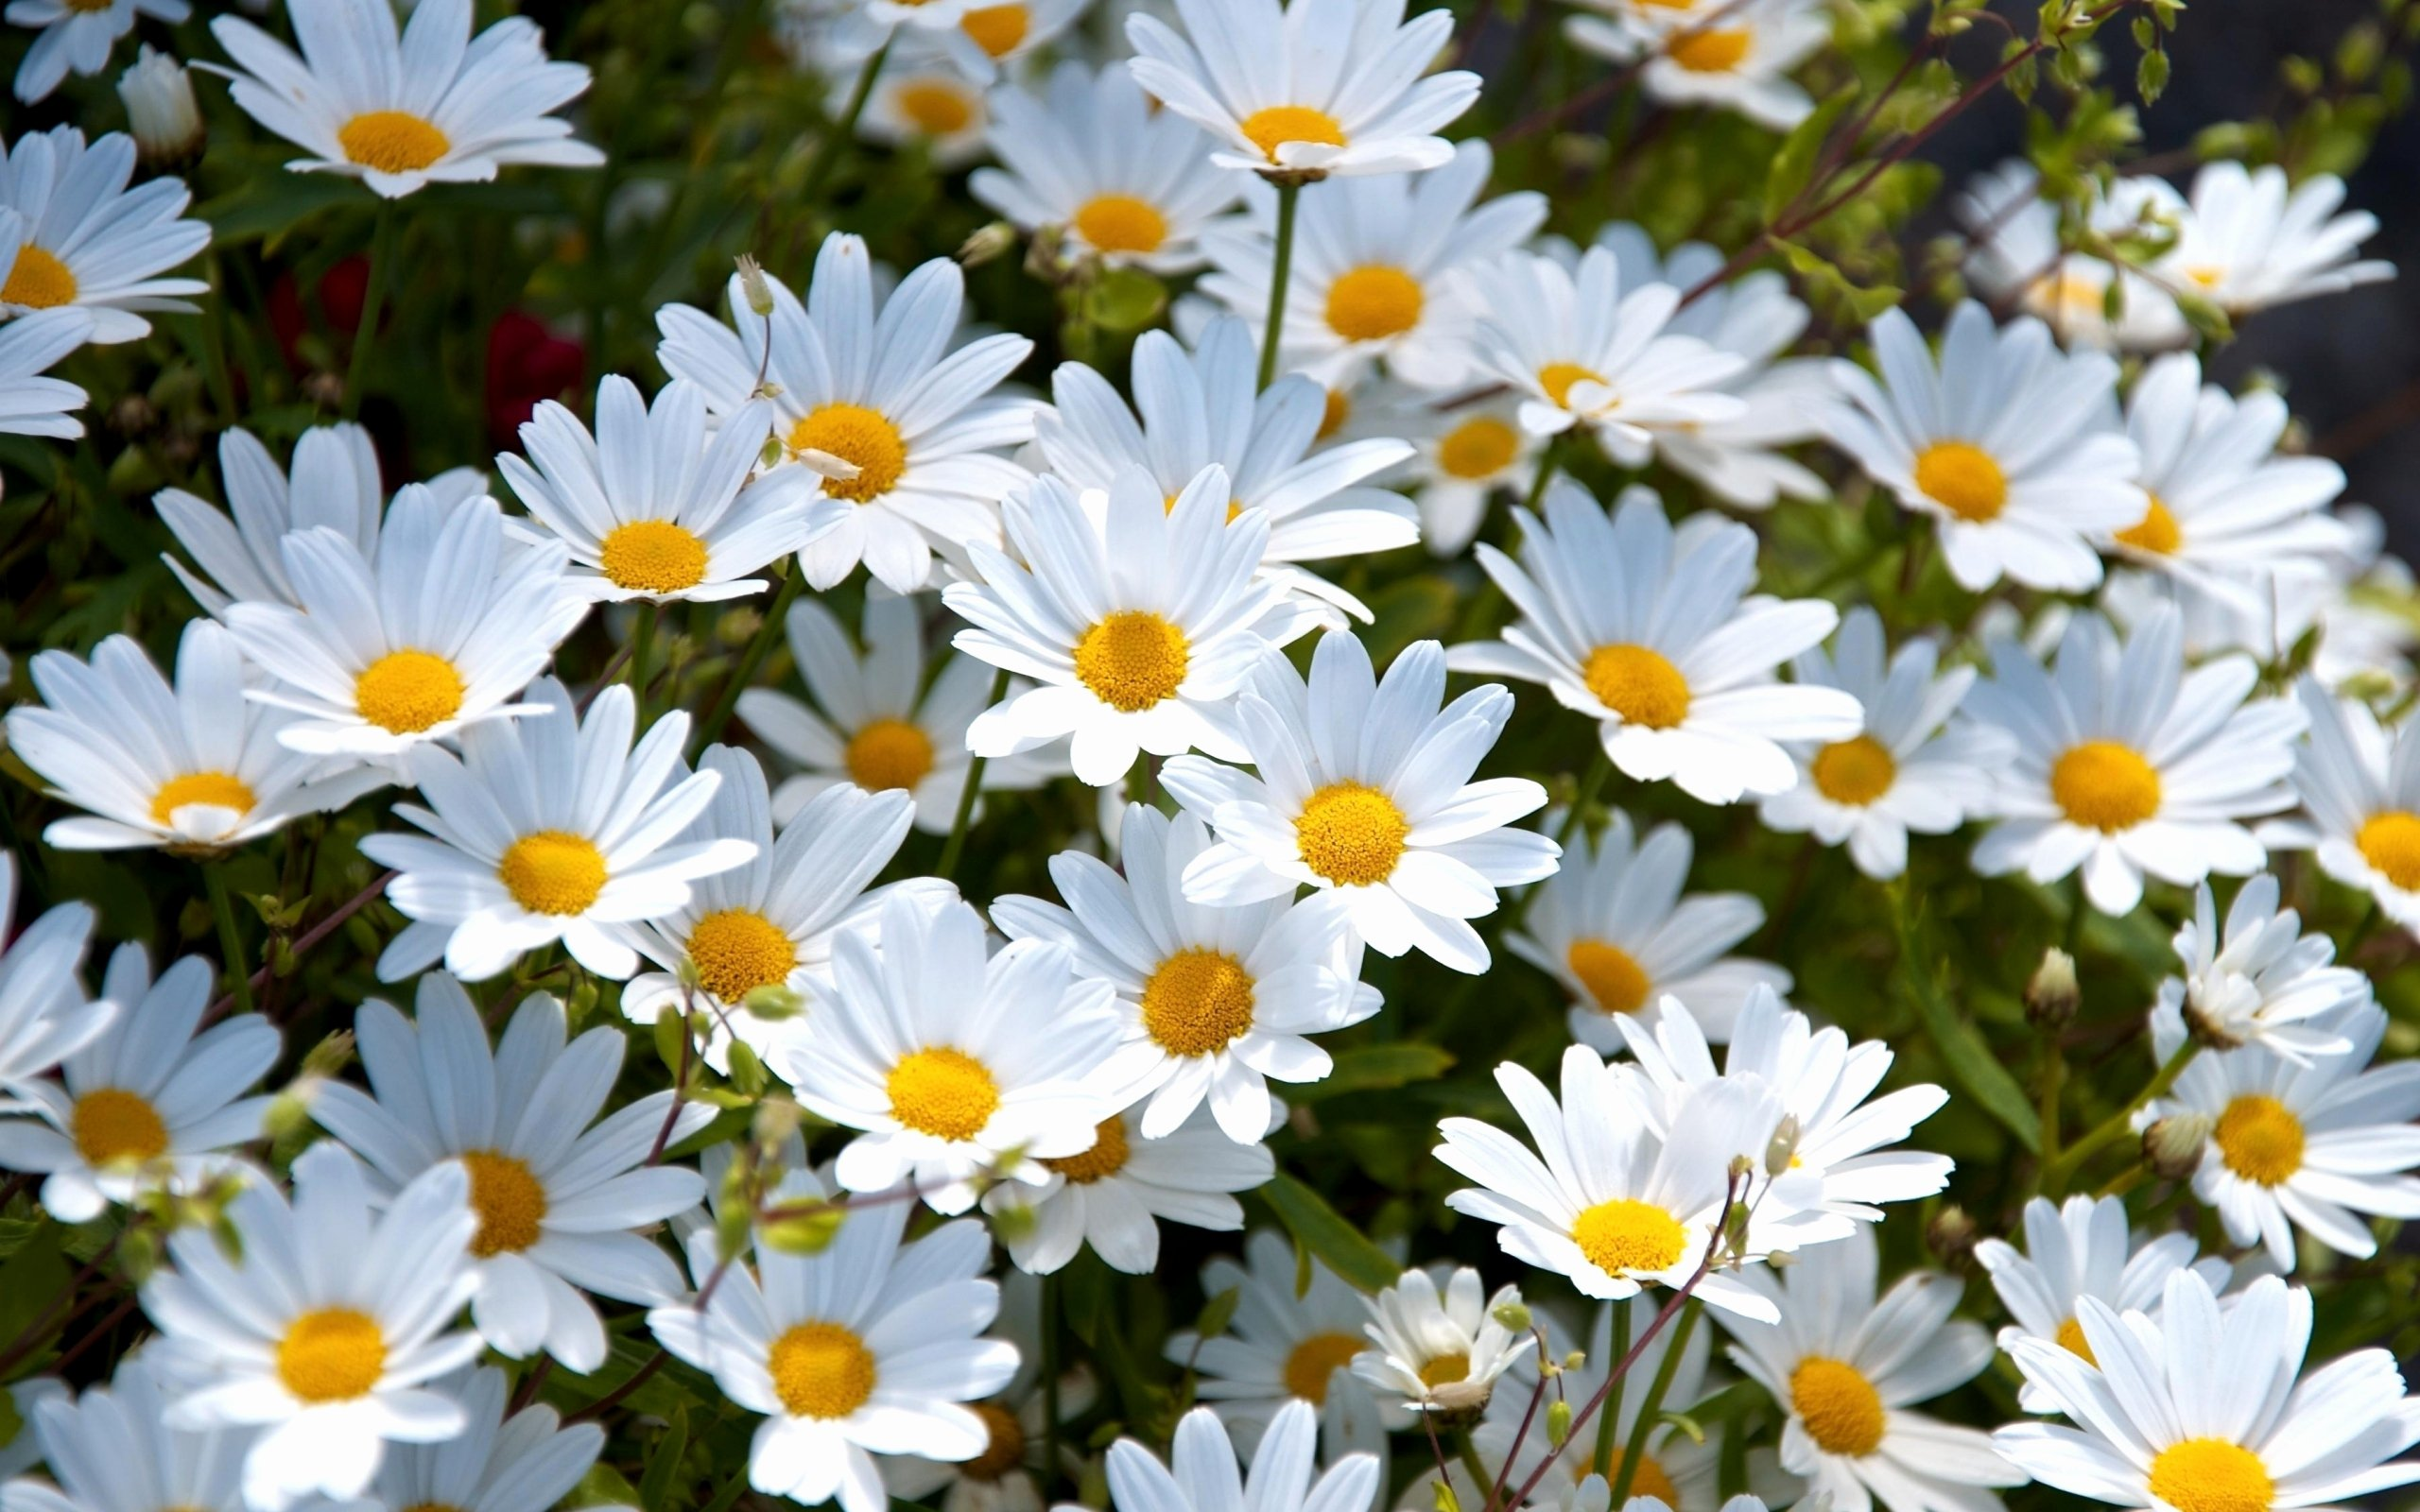 Free Flower Desktop Wallpaper Fresh Daisy Wallpaper High Quality